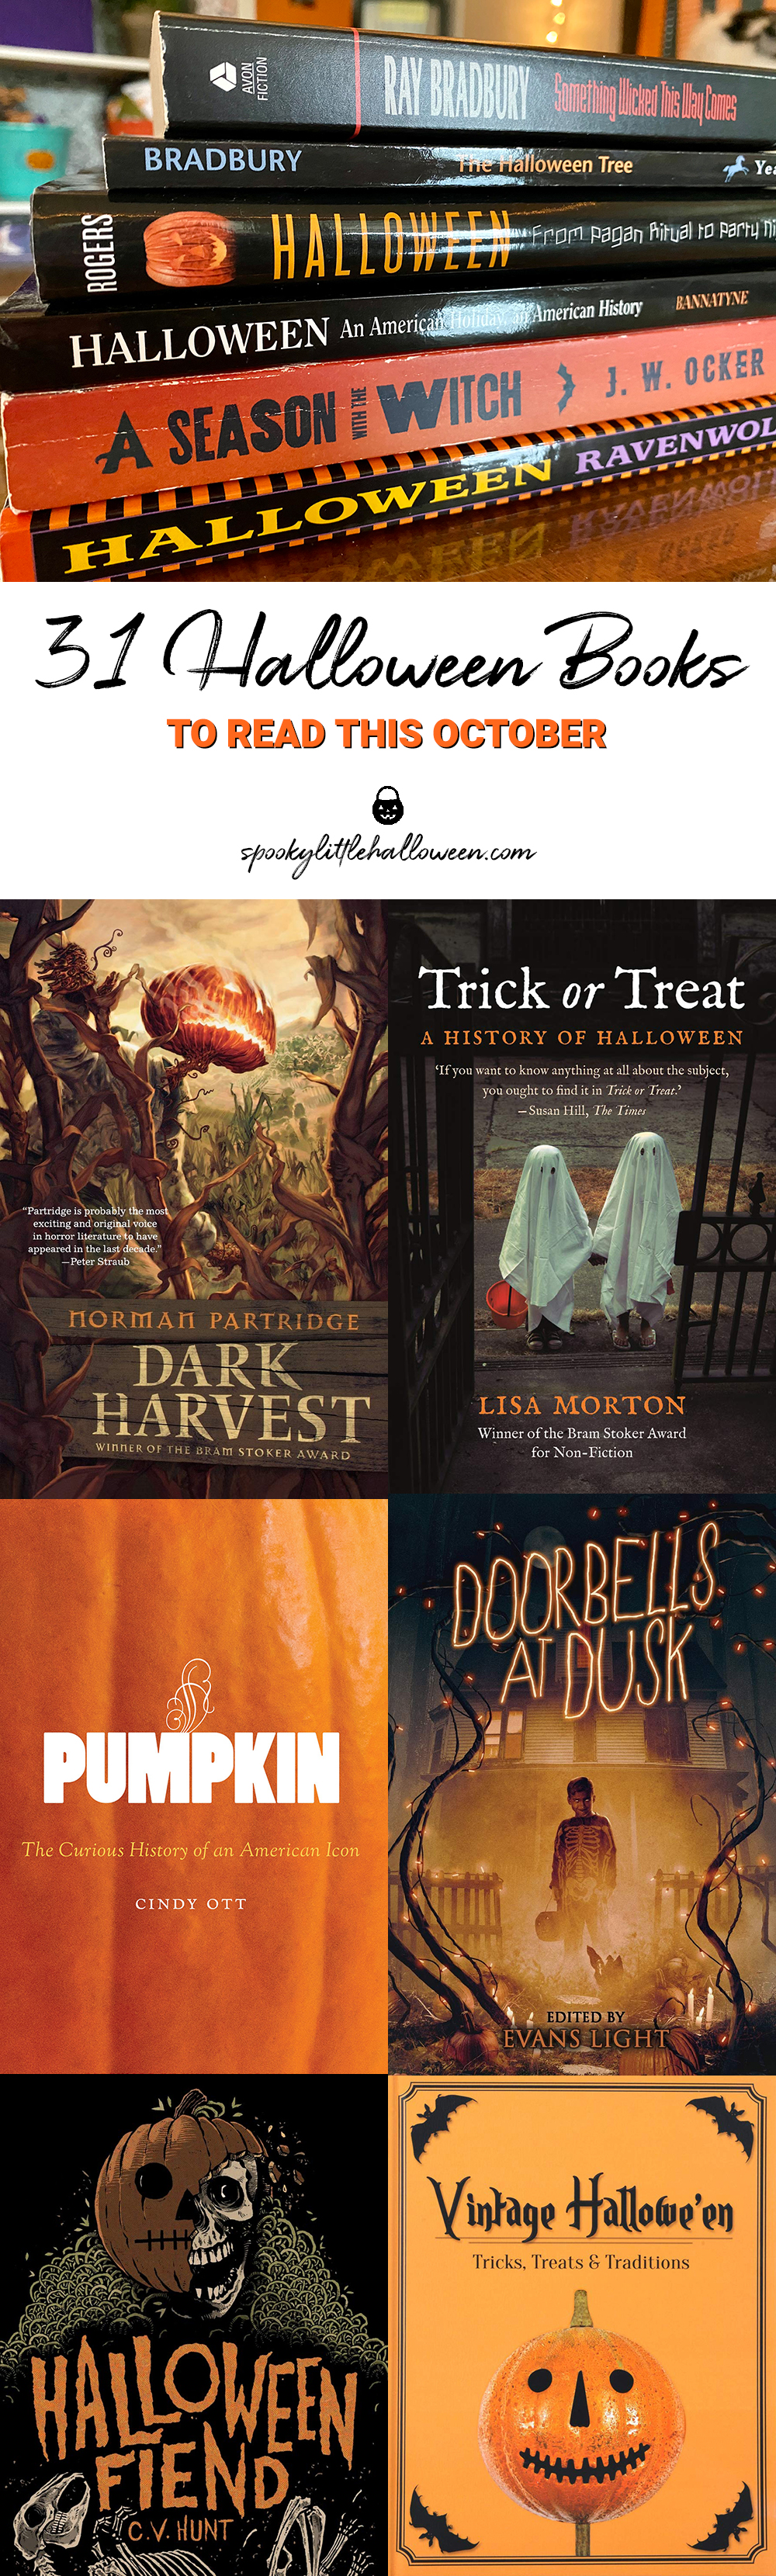 Anythingat Thr End Of Halloween 2020 31 Halloween Books to Read This October   Spooky Little Halloween